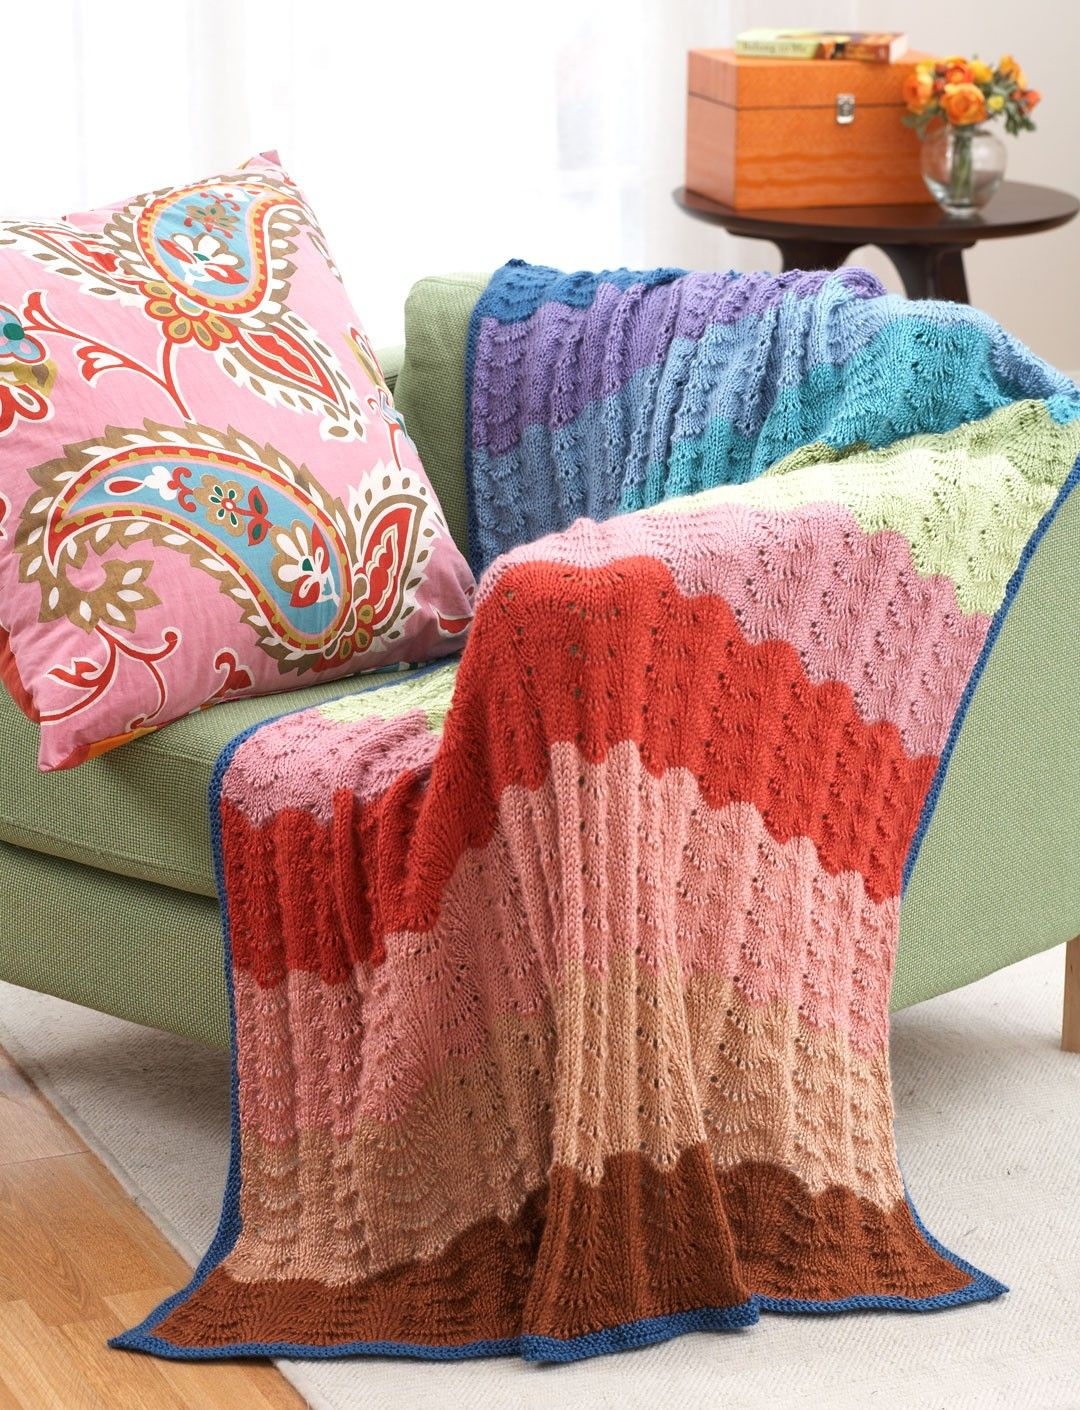 Yarnspirations bernat feather and fan afghan patterns yarnspirations bernat feather and fan afghan patterns yarnspirations bankloansurffo Images